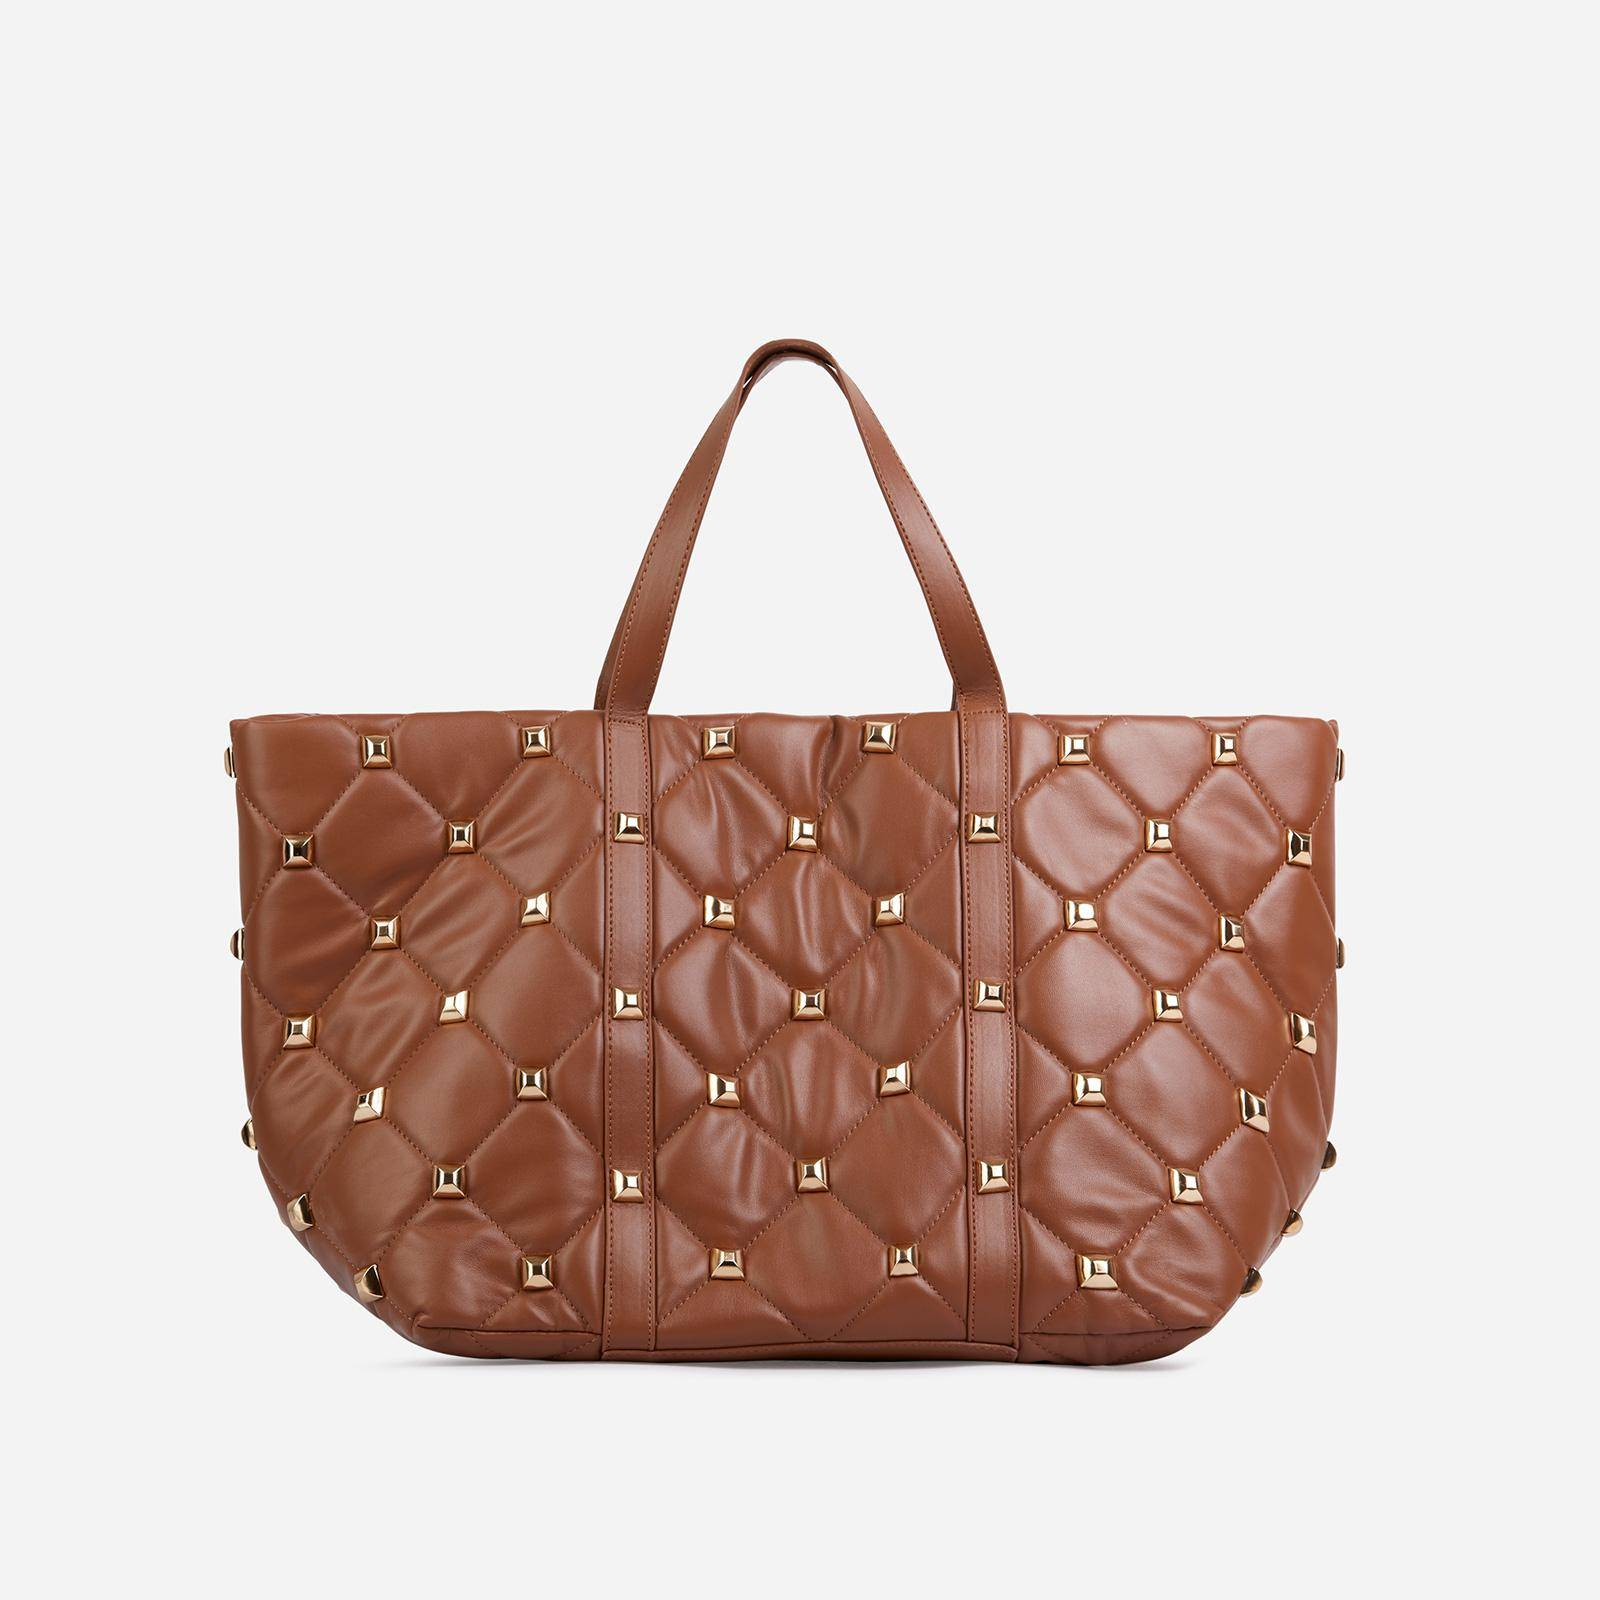 EGO Kym Studded Detail Oversized Tote Bag In Tan Brown Faux Leather,, Brown  - female - Size: One Size